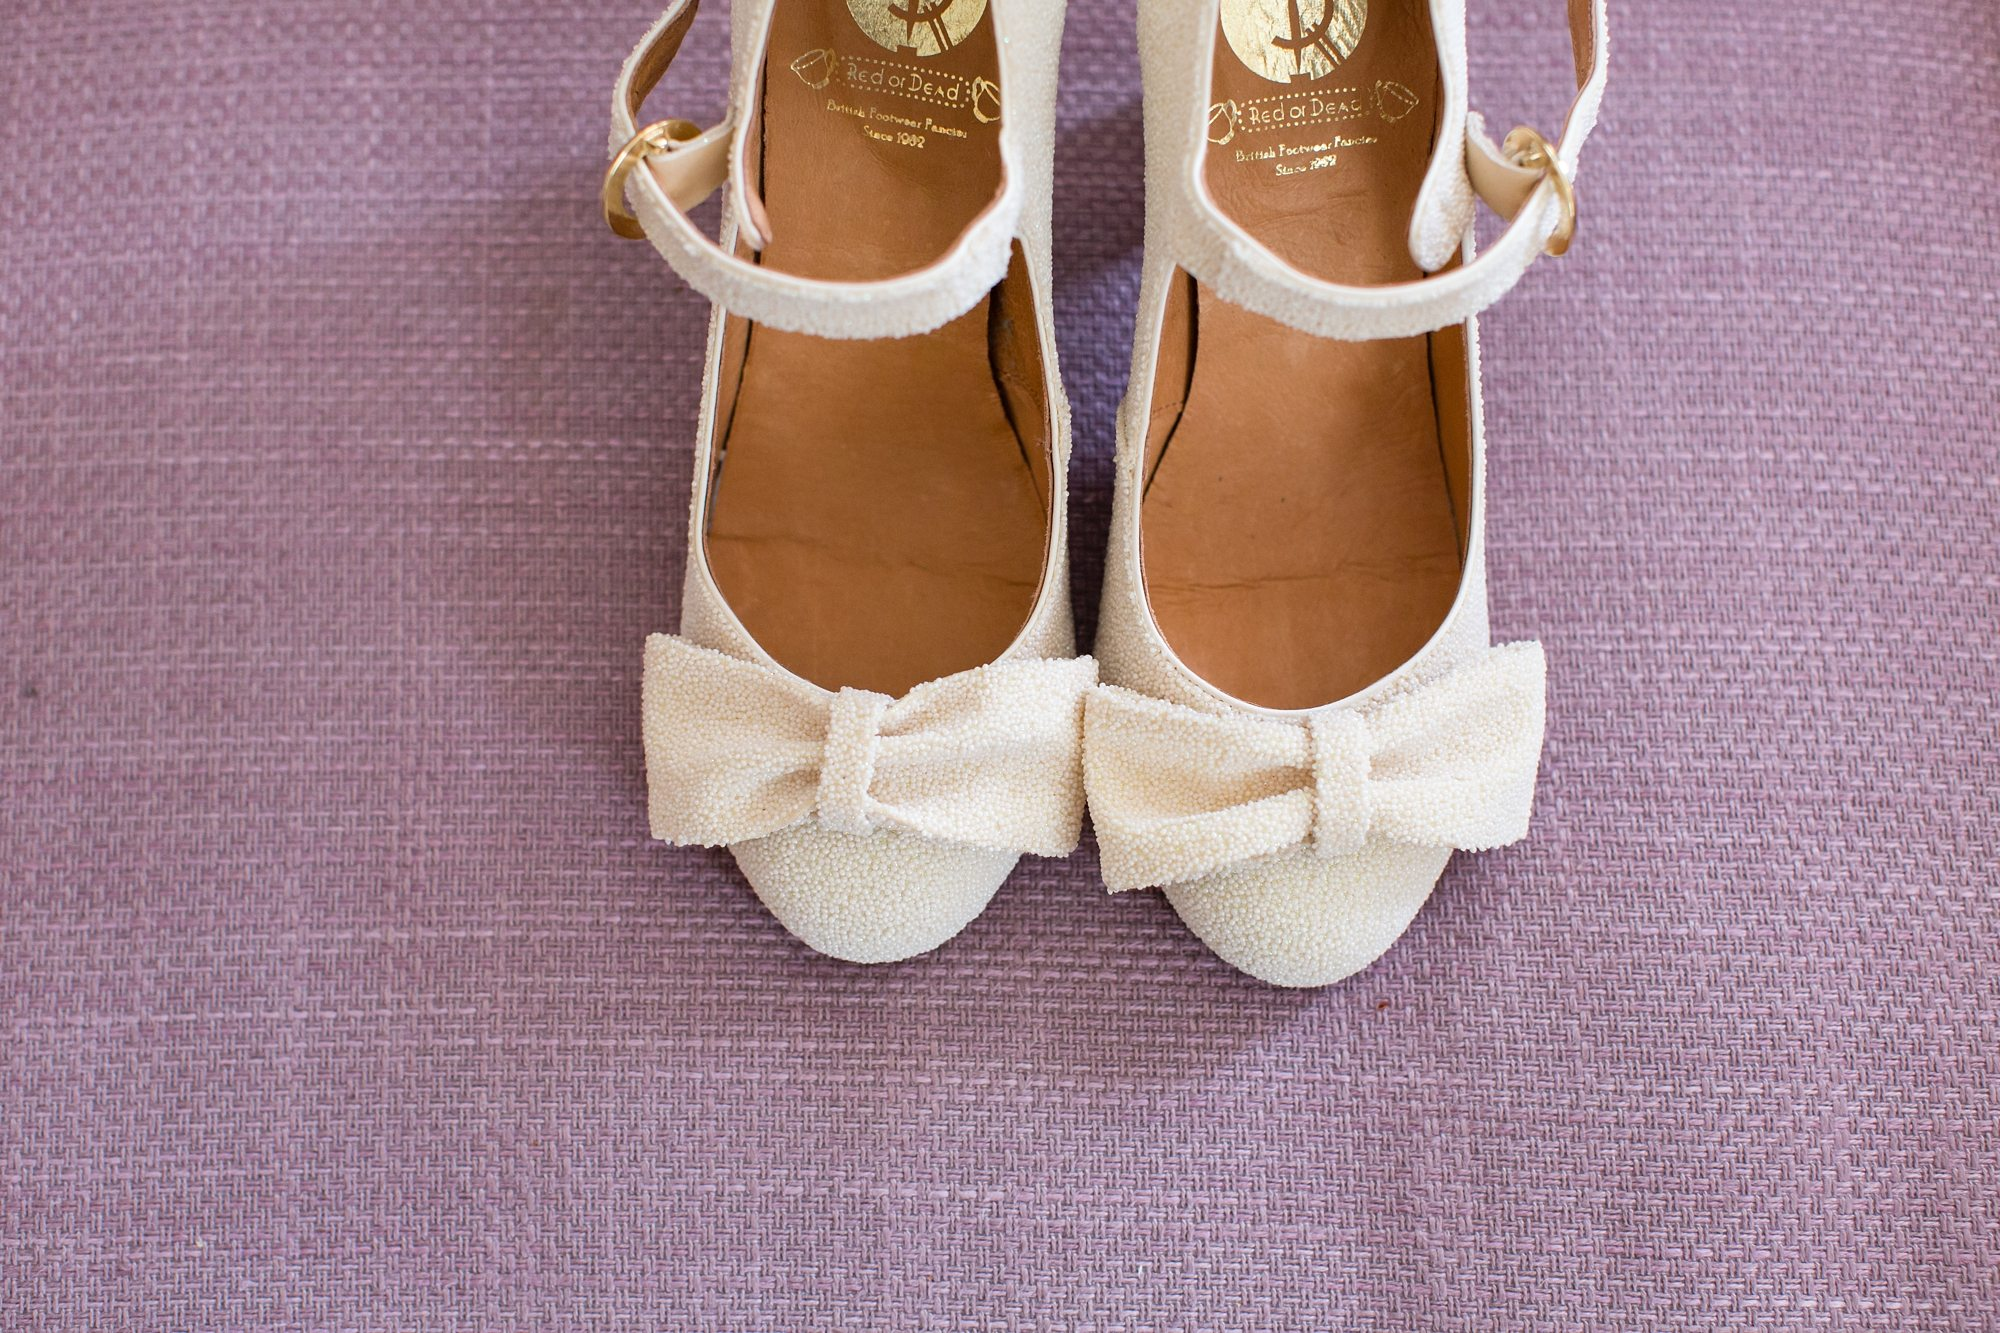 white womens shoes with bows on pink background